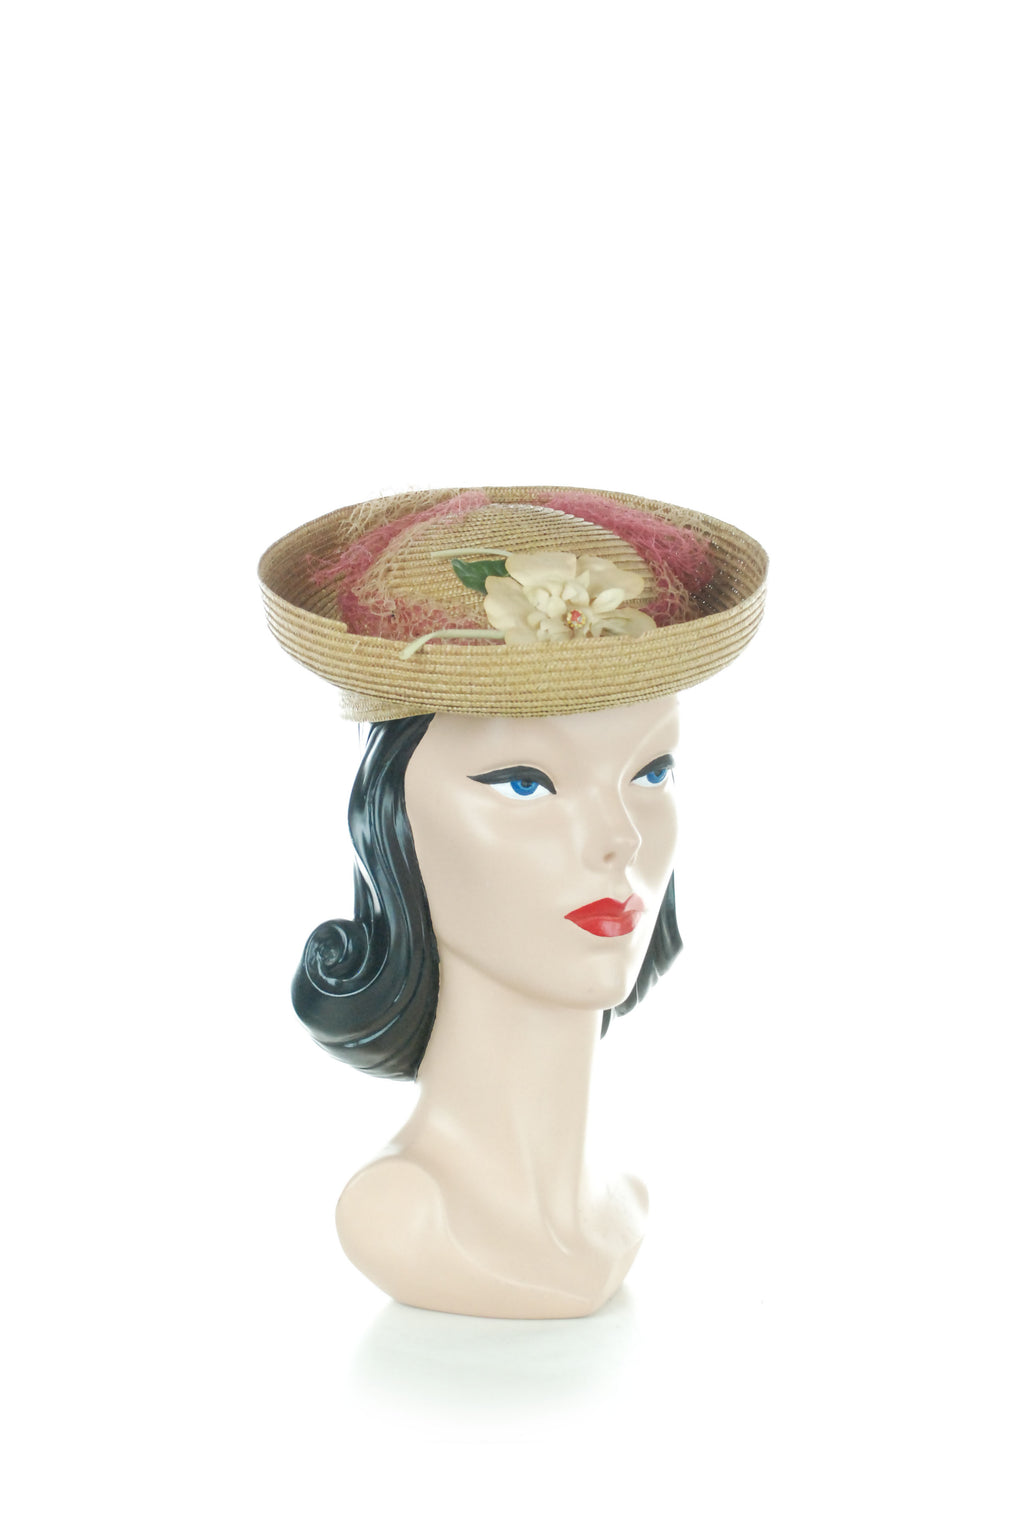 Lovely Chartreuse 1940s Straw Tilt with Upturned Brim, Pink Veiling and Millinery Flowers